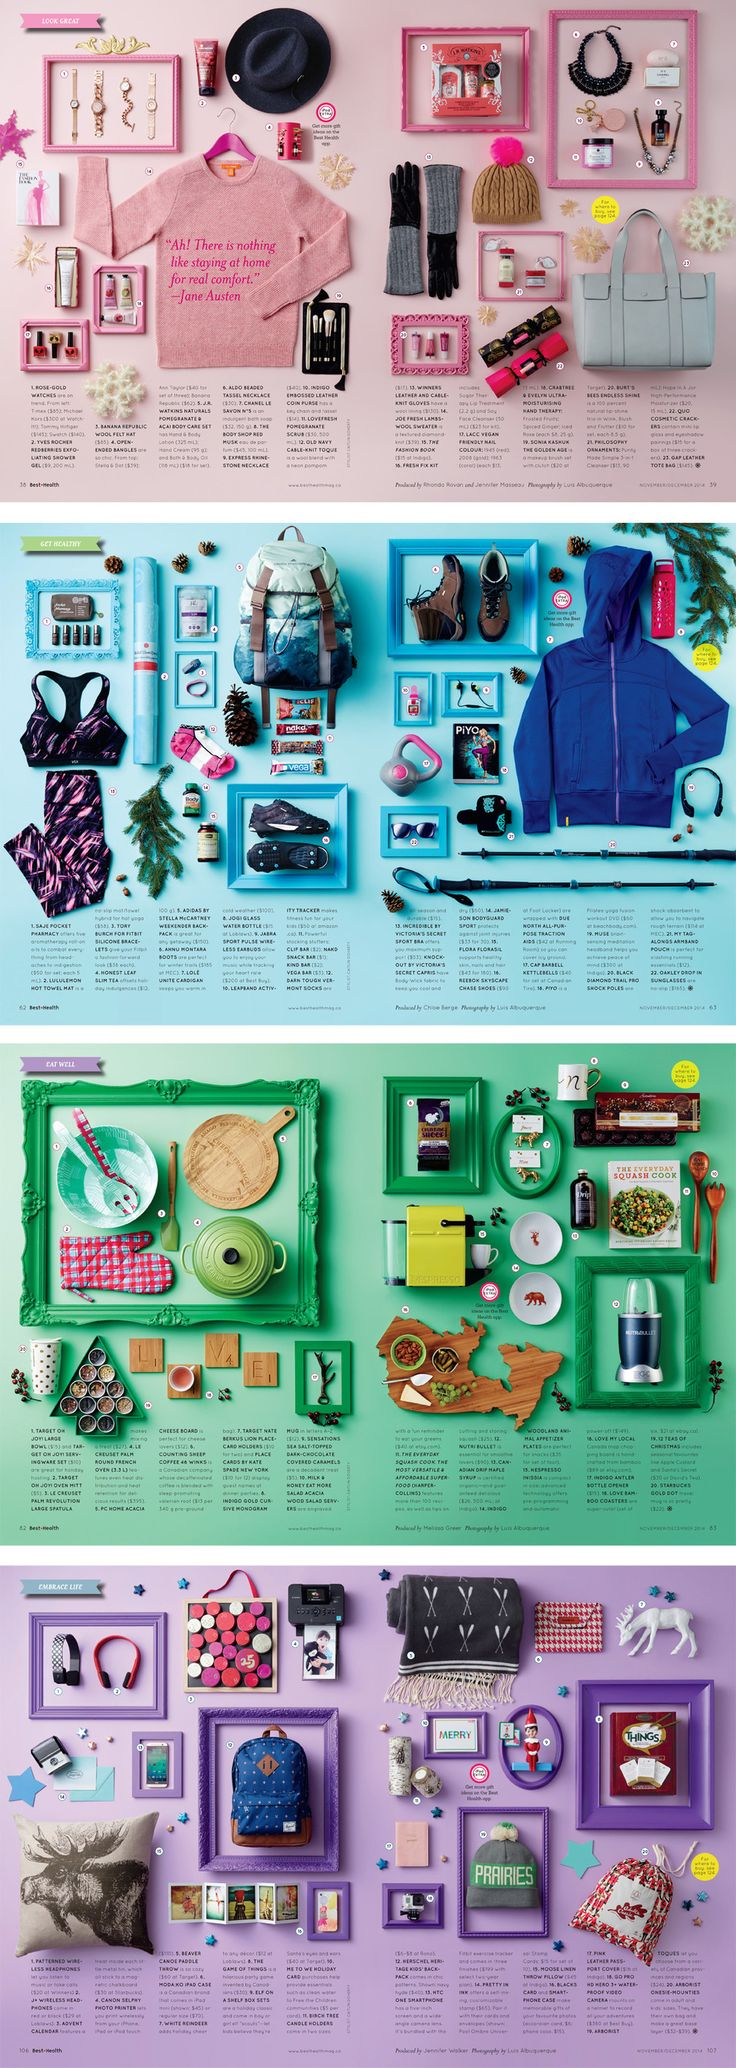 Gift Guide, Nov/Dec 2014 issue, Best Health Magazine